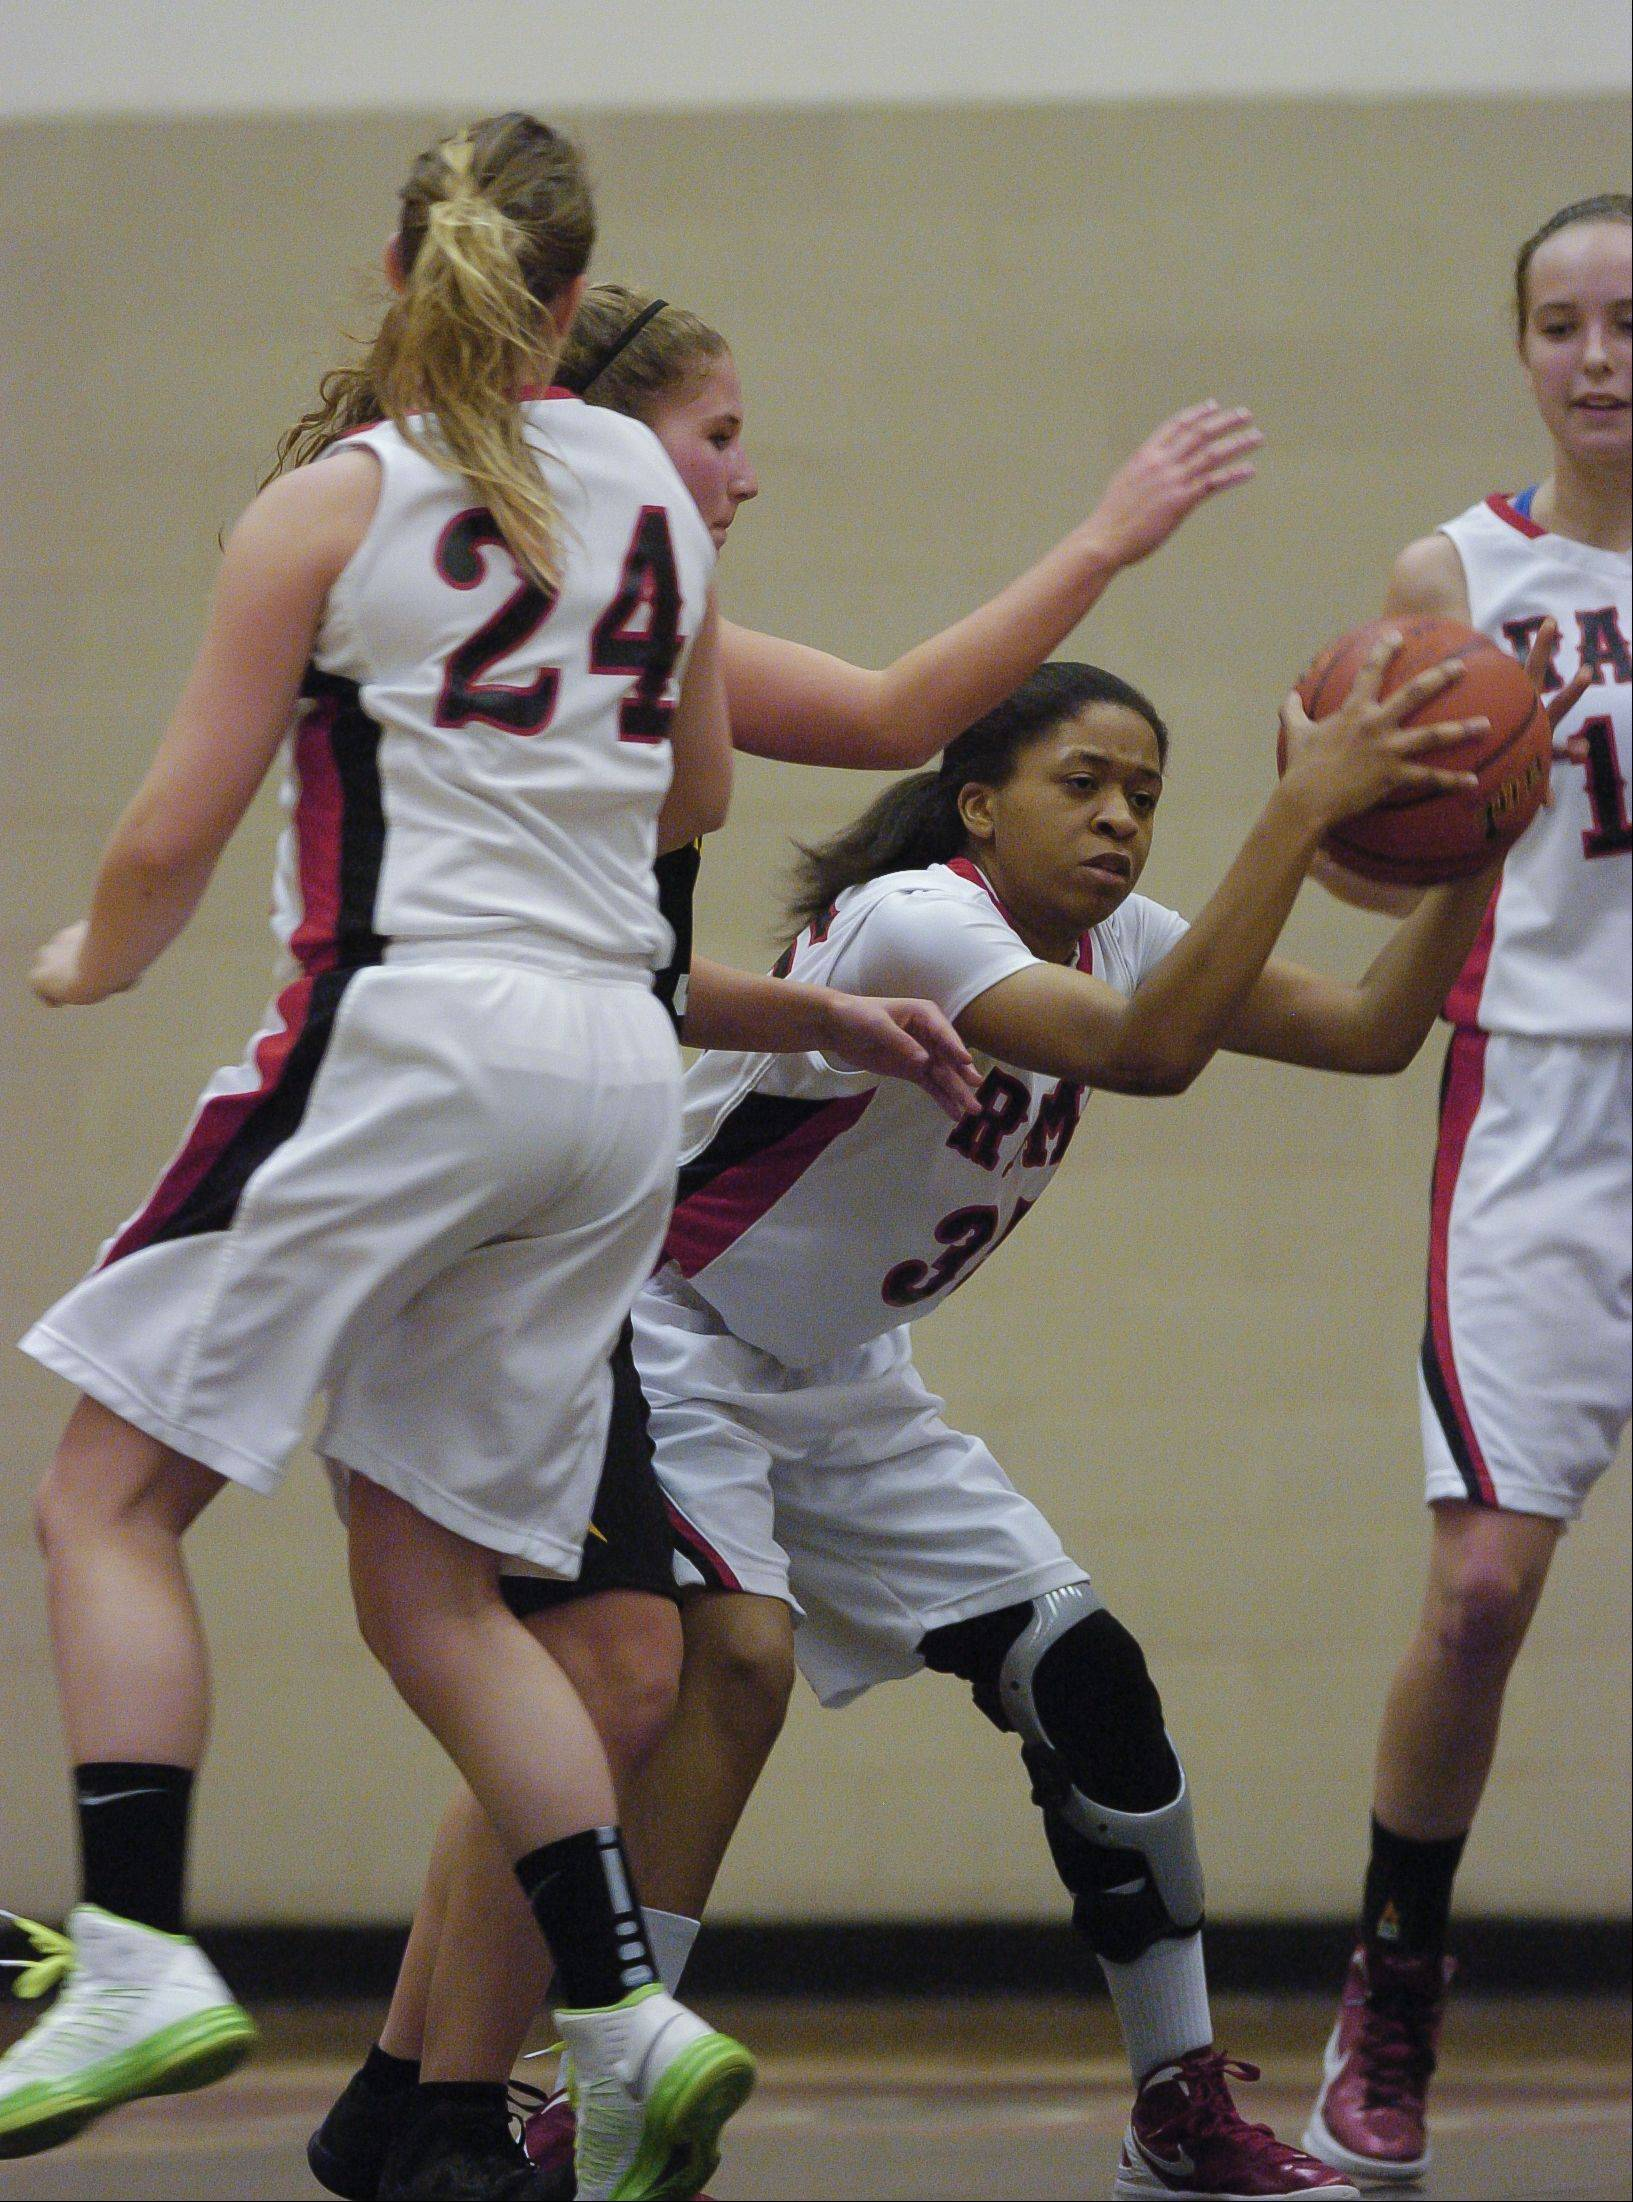 Glenbard East hosts Glenbard North in varsity girls basketball, Thursday in Lombard.